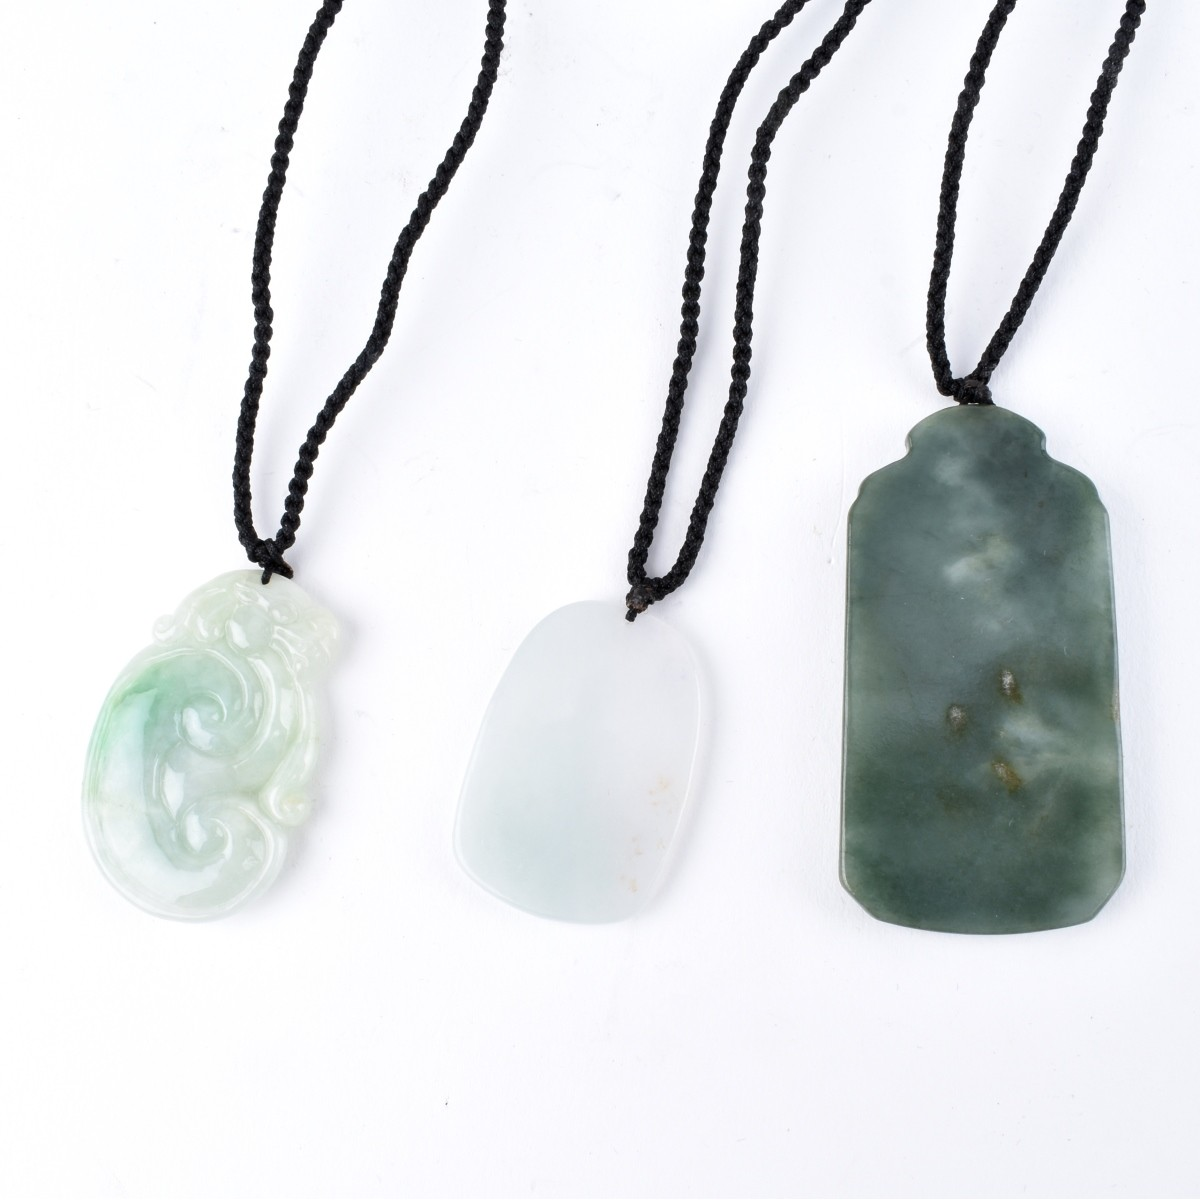 Three Hardstone Pendant Necklaces